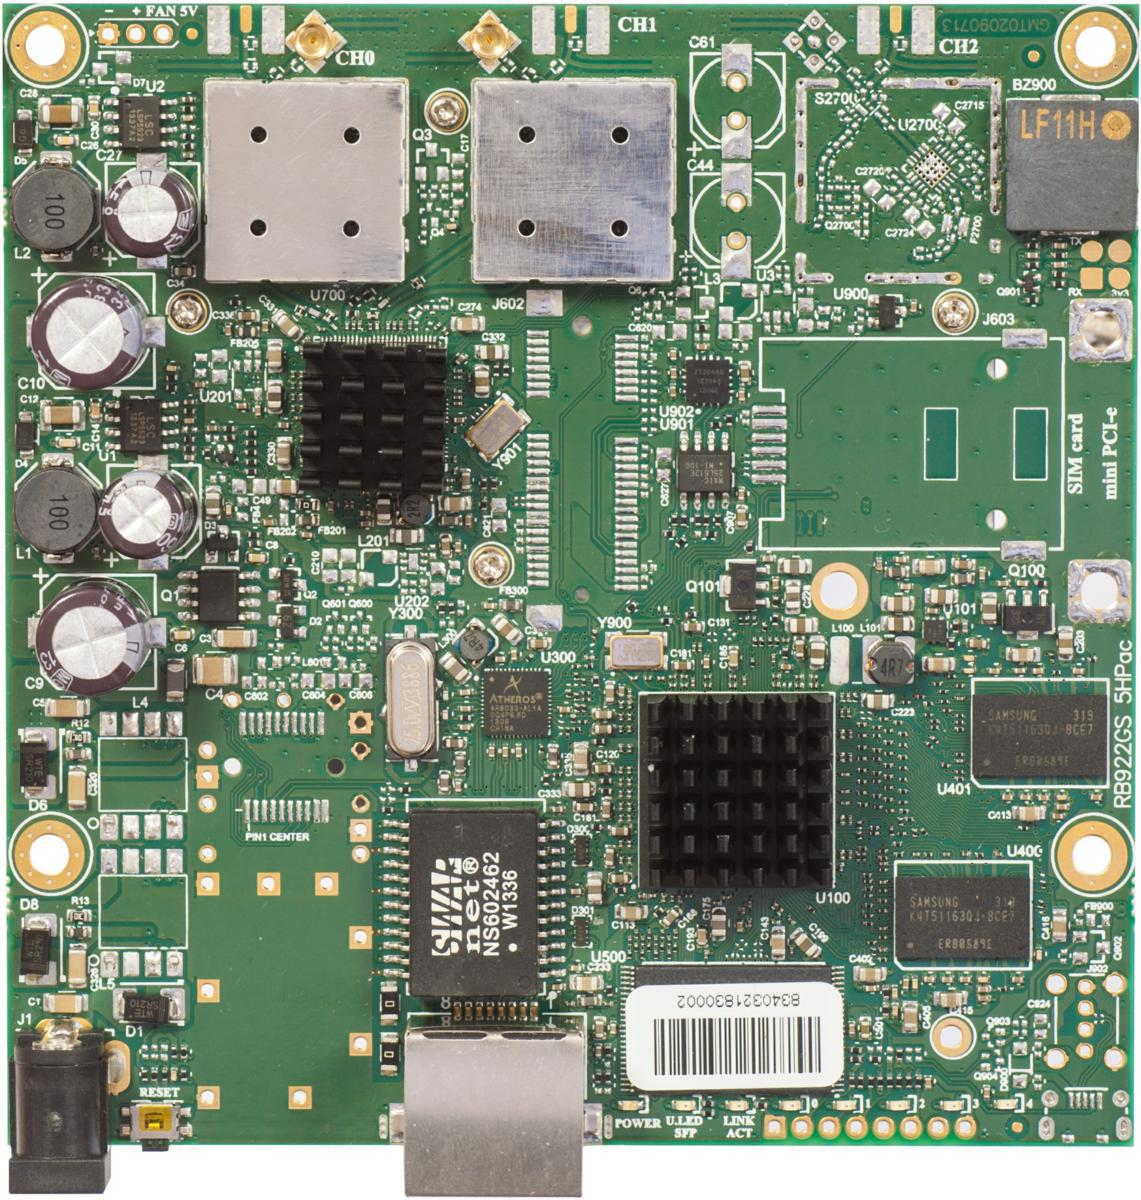 SICE Distributore Ufficiale  RouterBOARD RouterBOARD 911G 720MHzAtheros CPU128MB RAM 1GLAN 802.11a/c 2×2 | RB911G-5HPACD